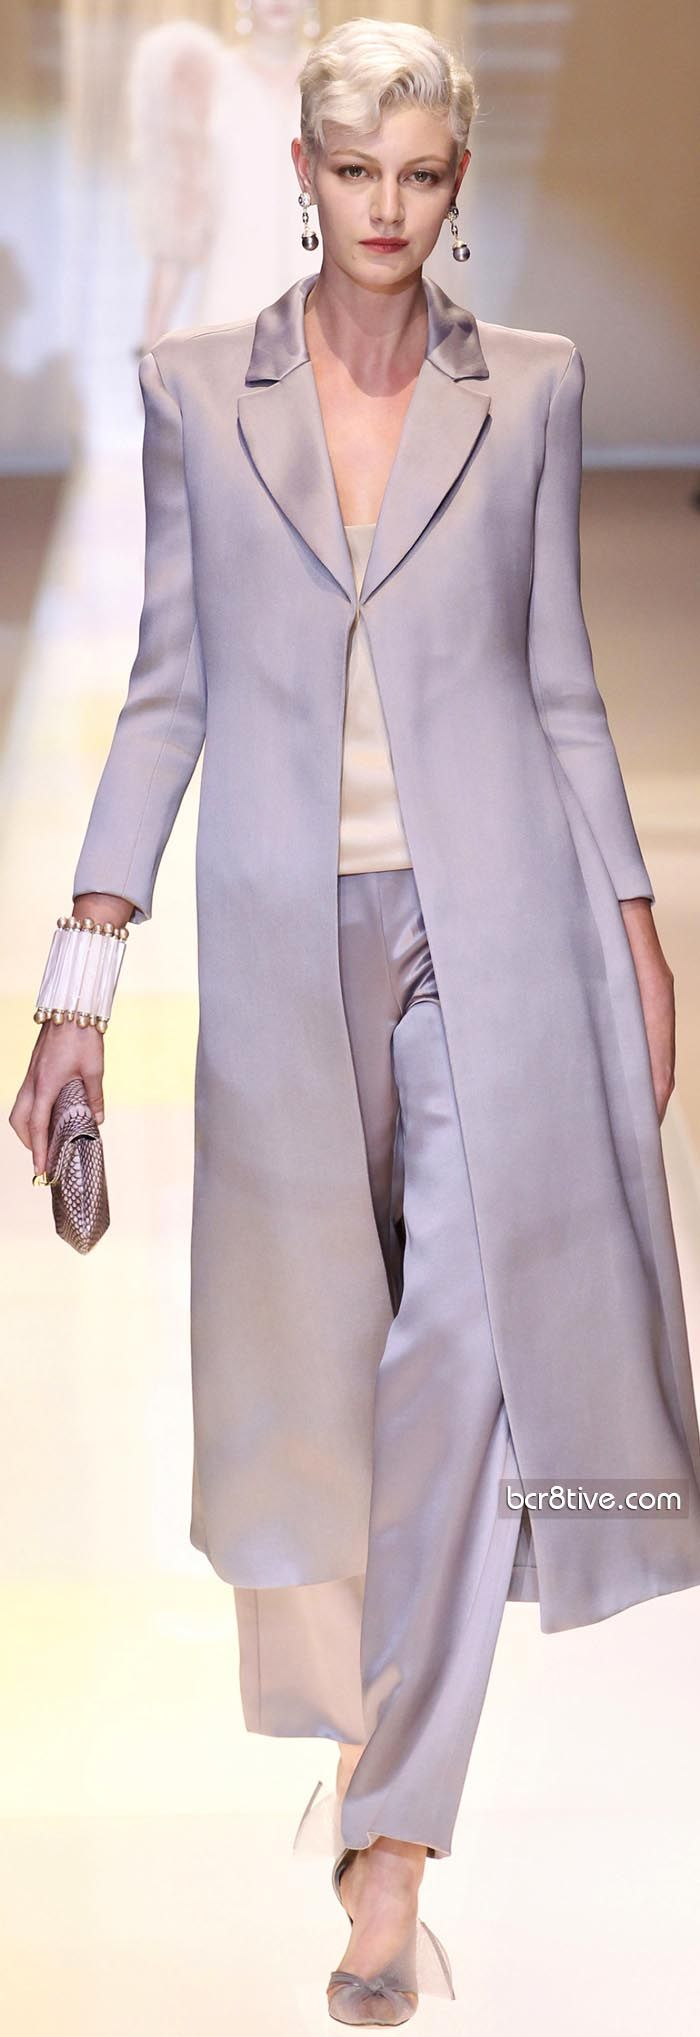 strollin through the women's fashion page and strolling past Rachael.  Giorgio Armani Privé F/W 2013-14 Couture